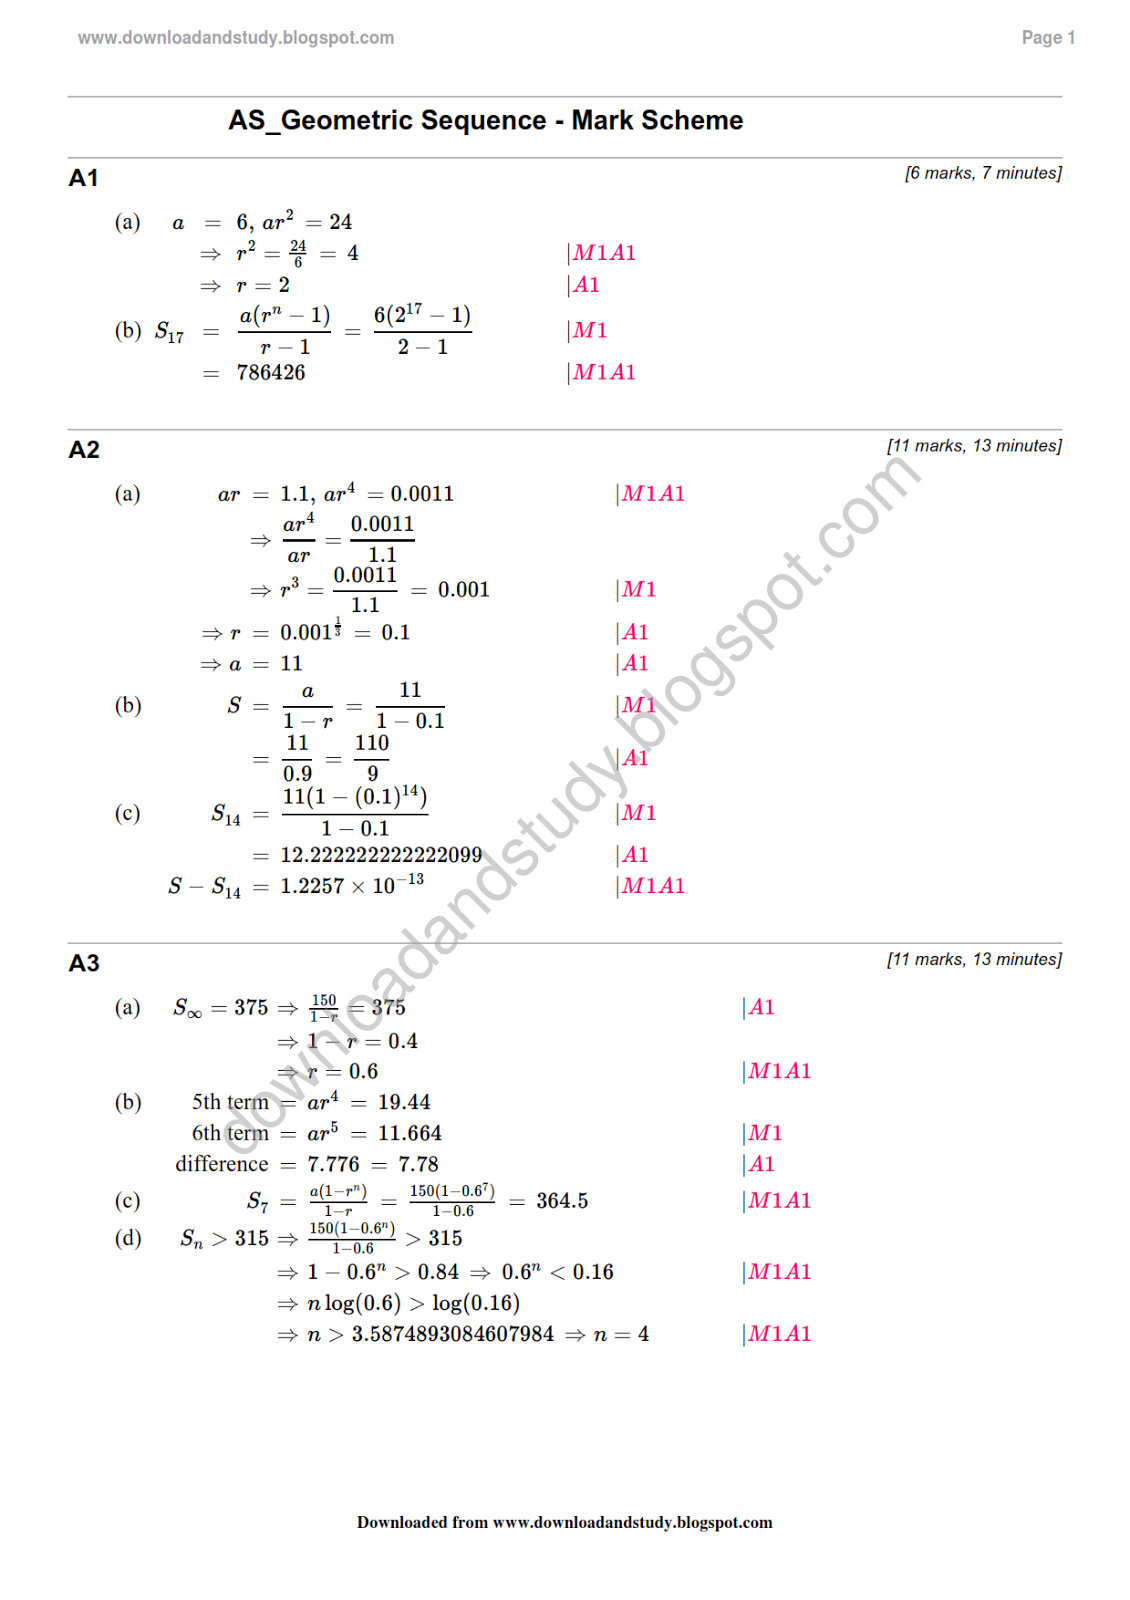 Arithmetic And Geometric Sequences Worksheet - Promotiontablecovers [ 1600 x 1130 Pixel ]